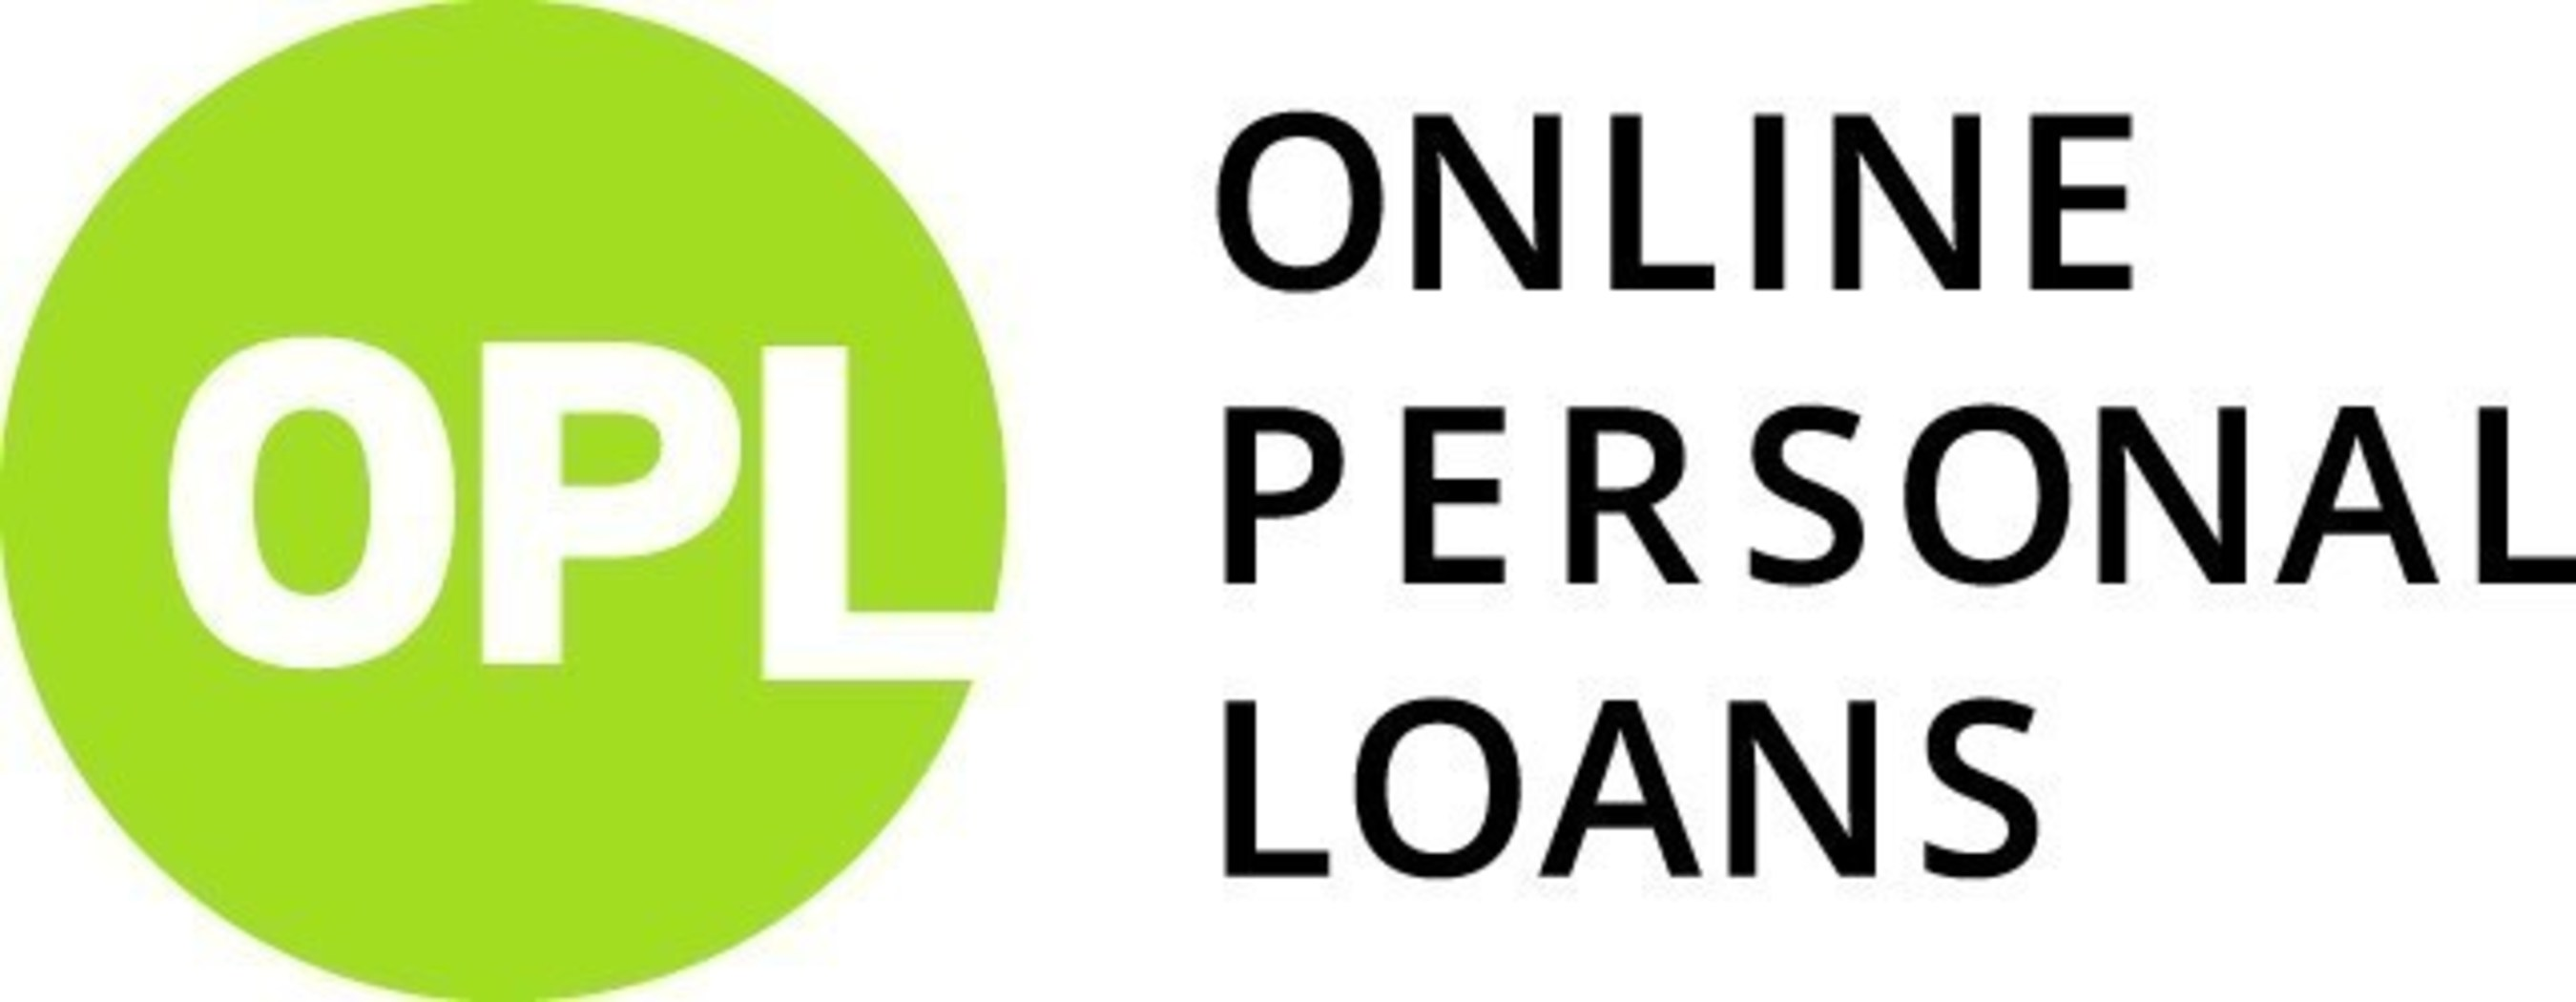 Zero Parallel Launches OnlinePersonalLoans.com, Offering No-Collateral Personal Loans up to $15,000